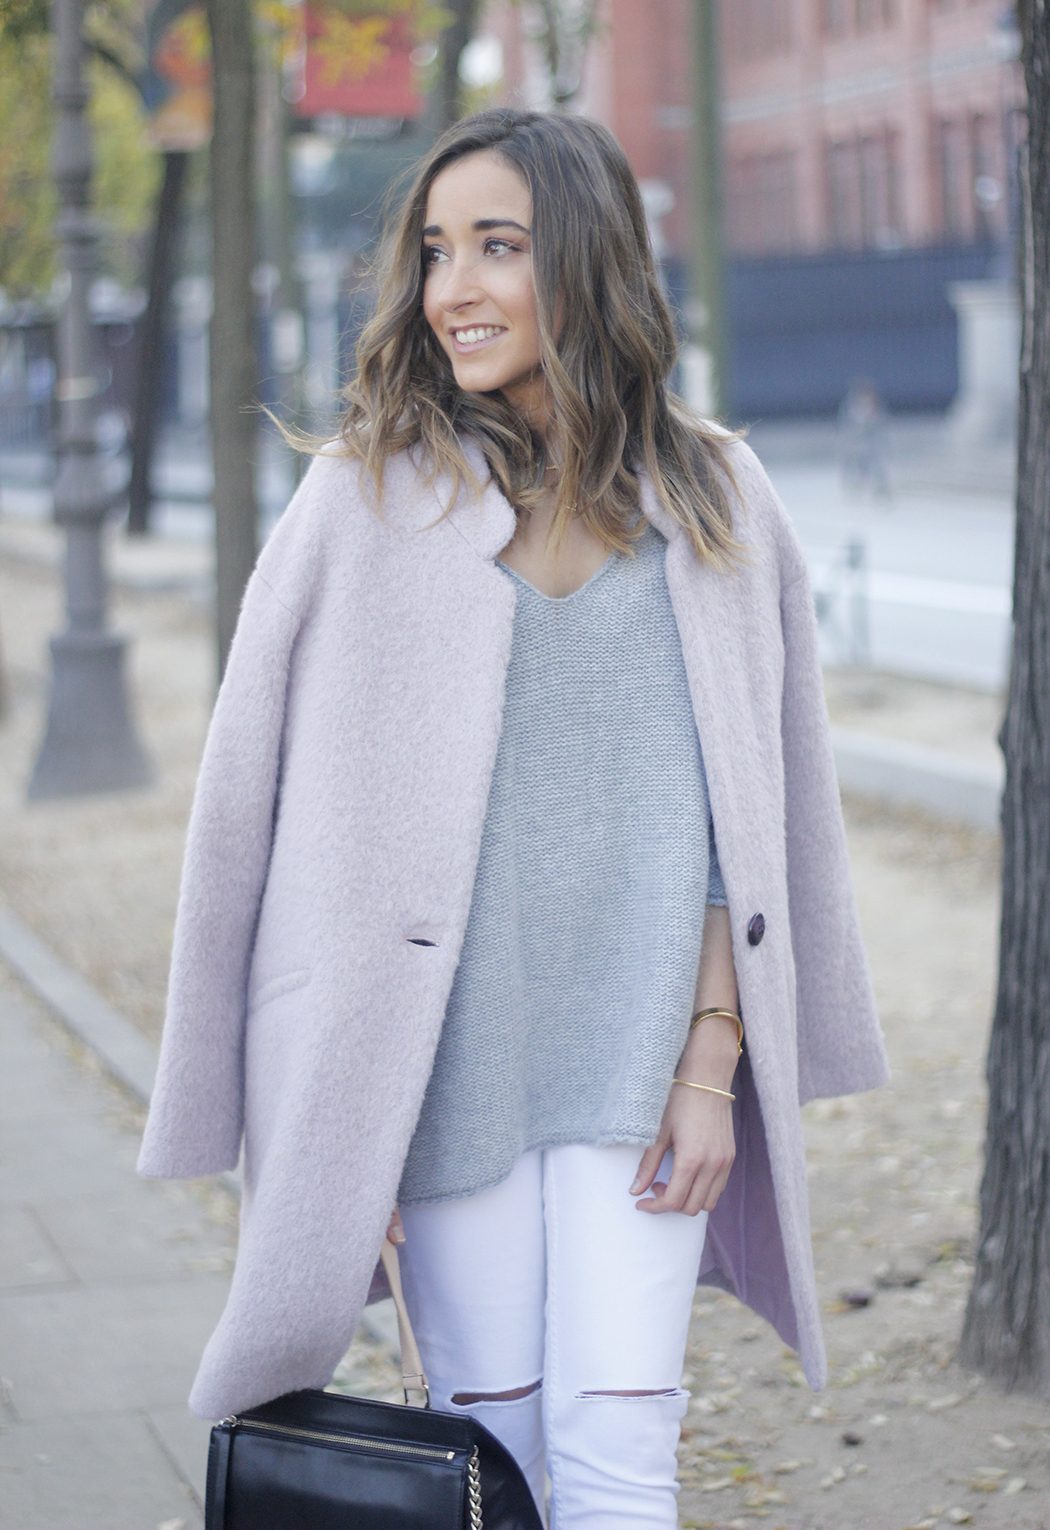 Tintoretto Pink Coat white jeans grey sweater outfit05